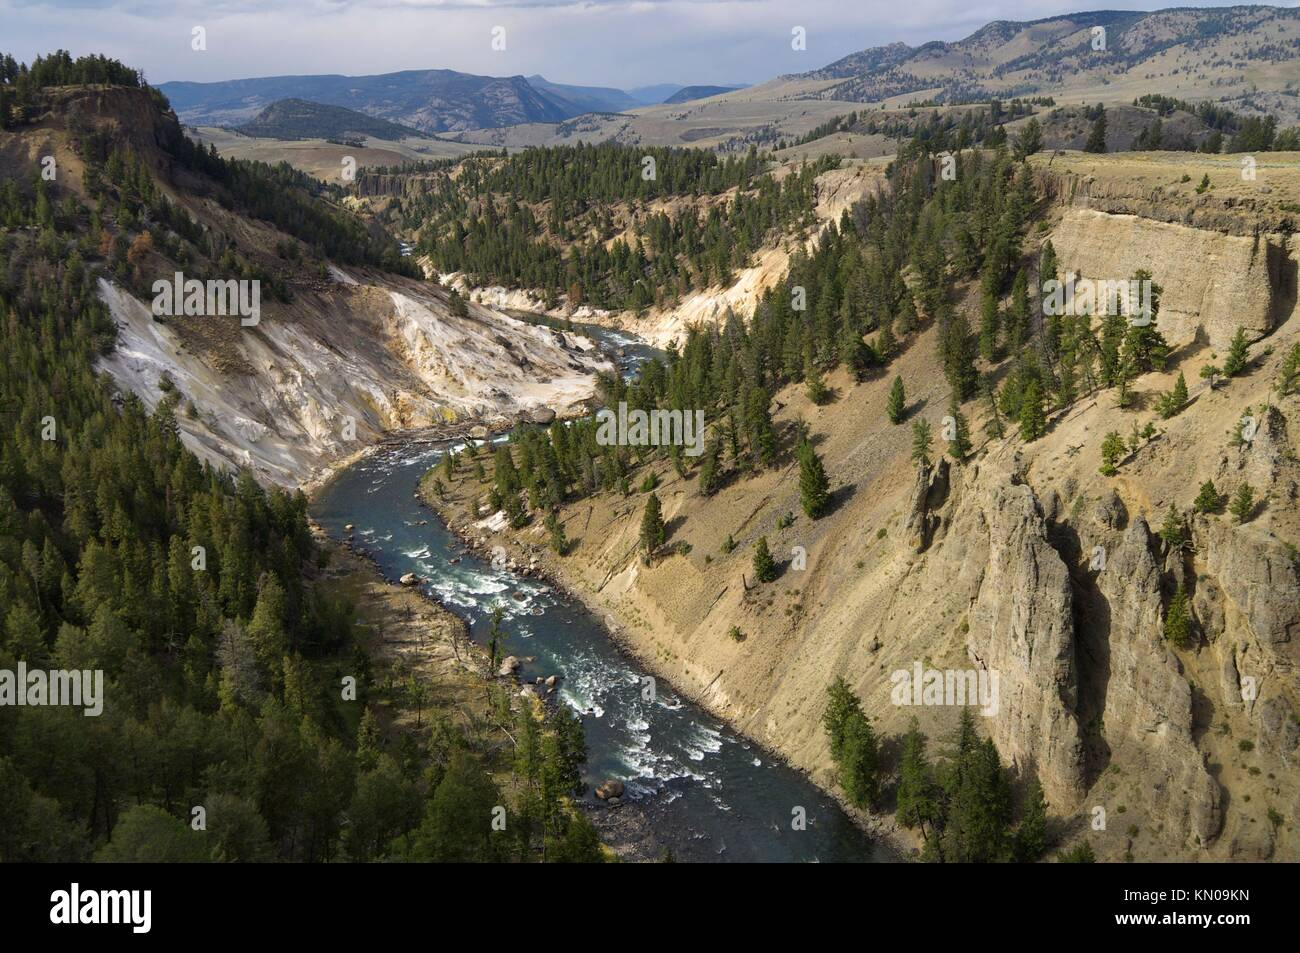 Yellowstone River In Tower Roosevelt Area Yellowstone National Park Stock Photo Alamy